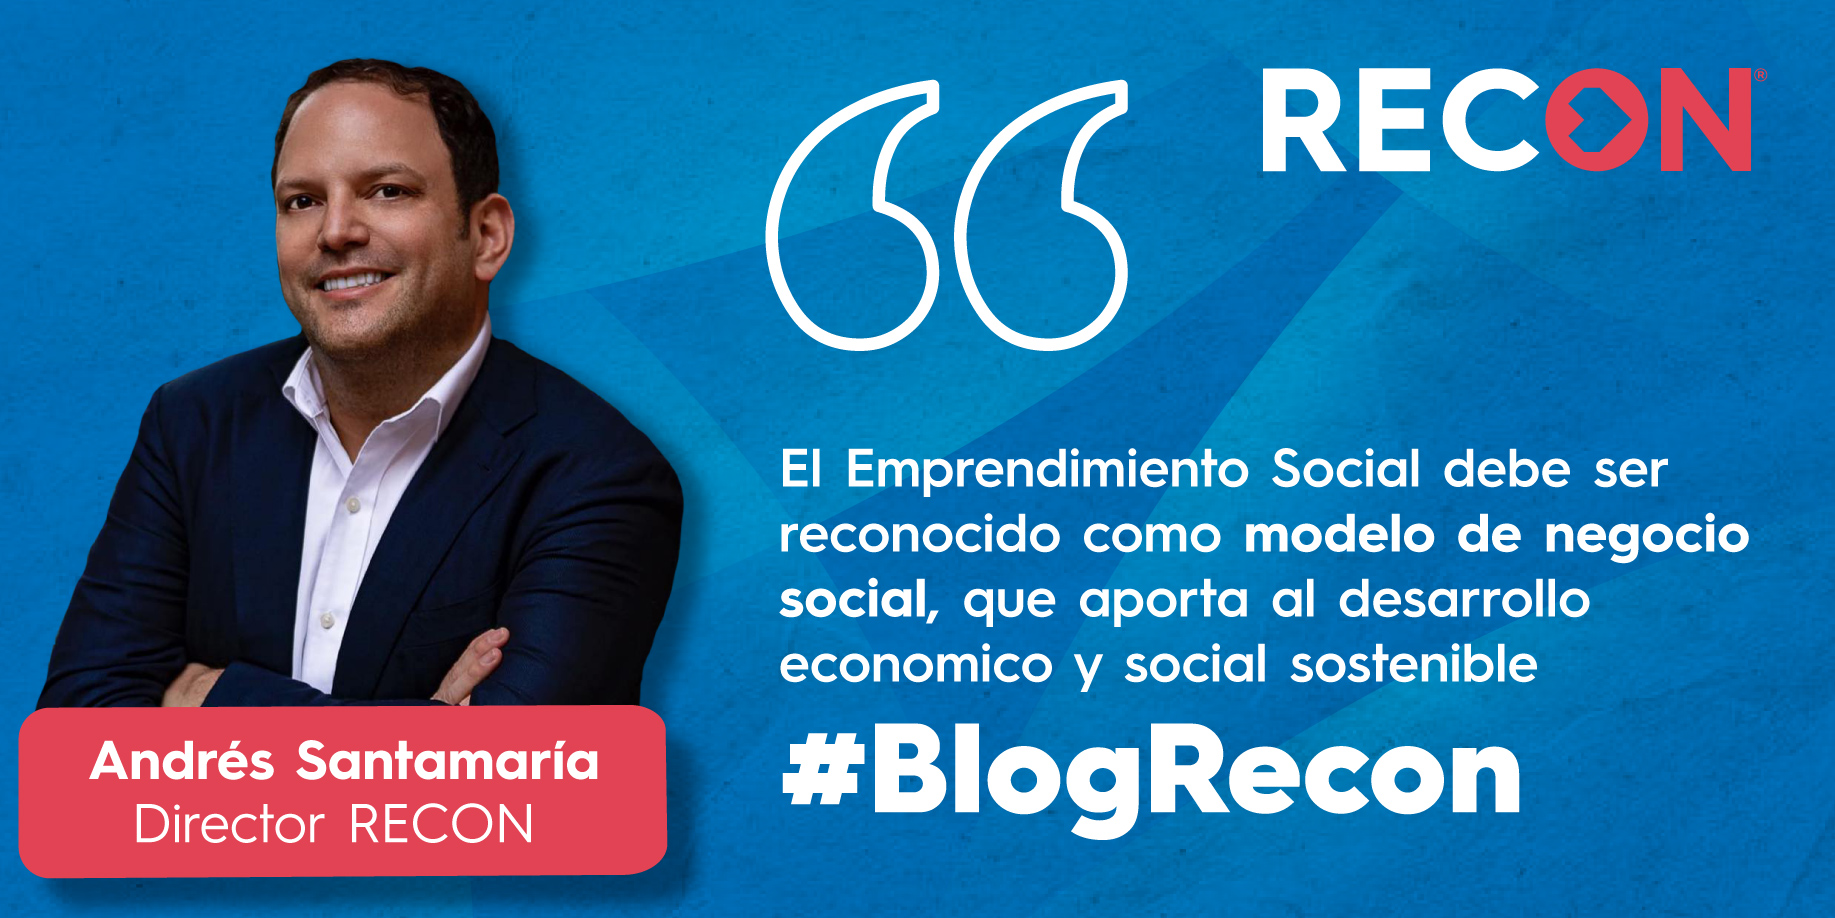 Blog Recon Andrés Santamaría